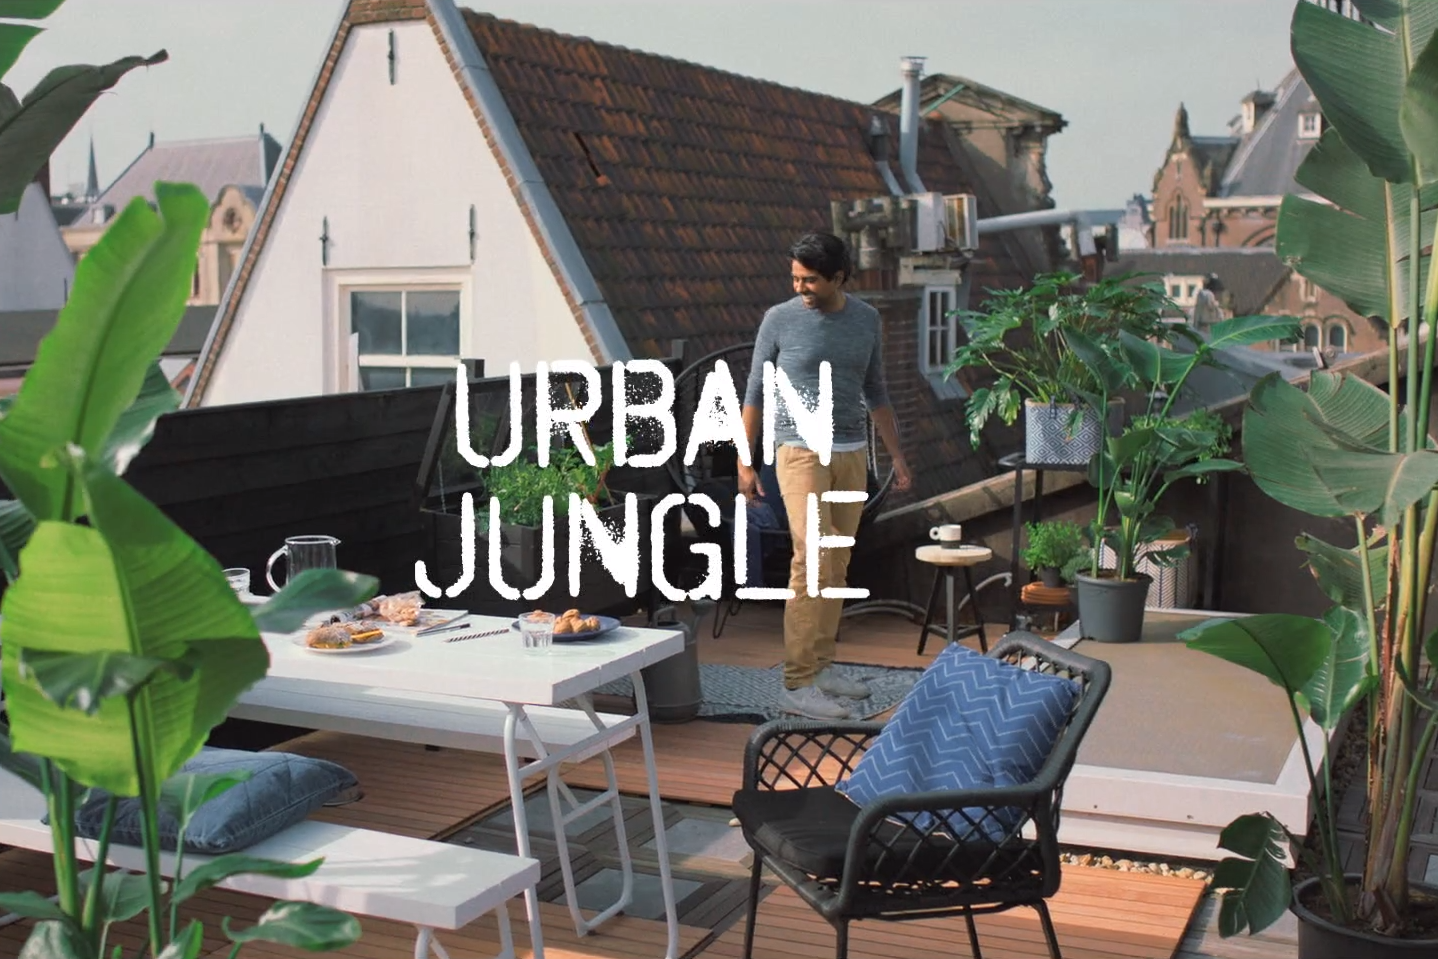 karwei 'weg met saaie tuinen' - Gardens are boring, right? Guess again. Operator took the script and reduced it to the one-take of the final piece working with agency Isobar.